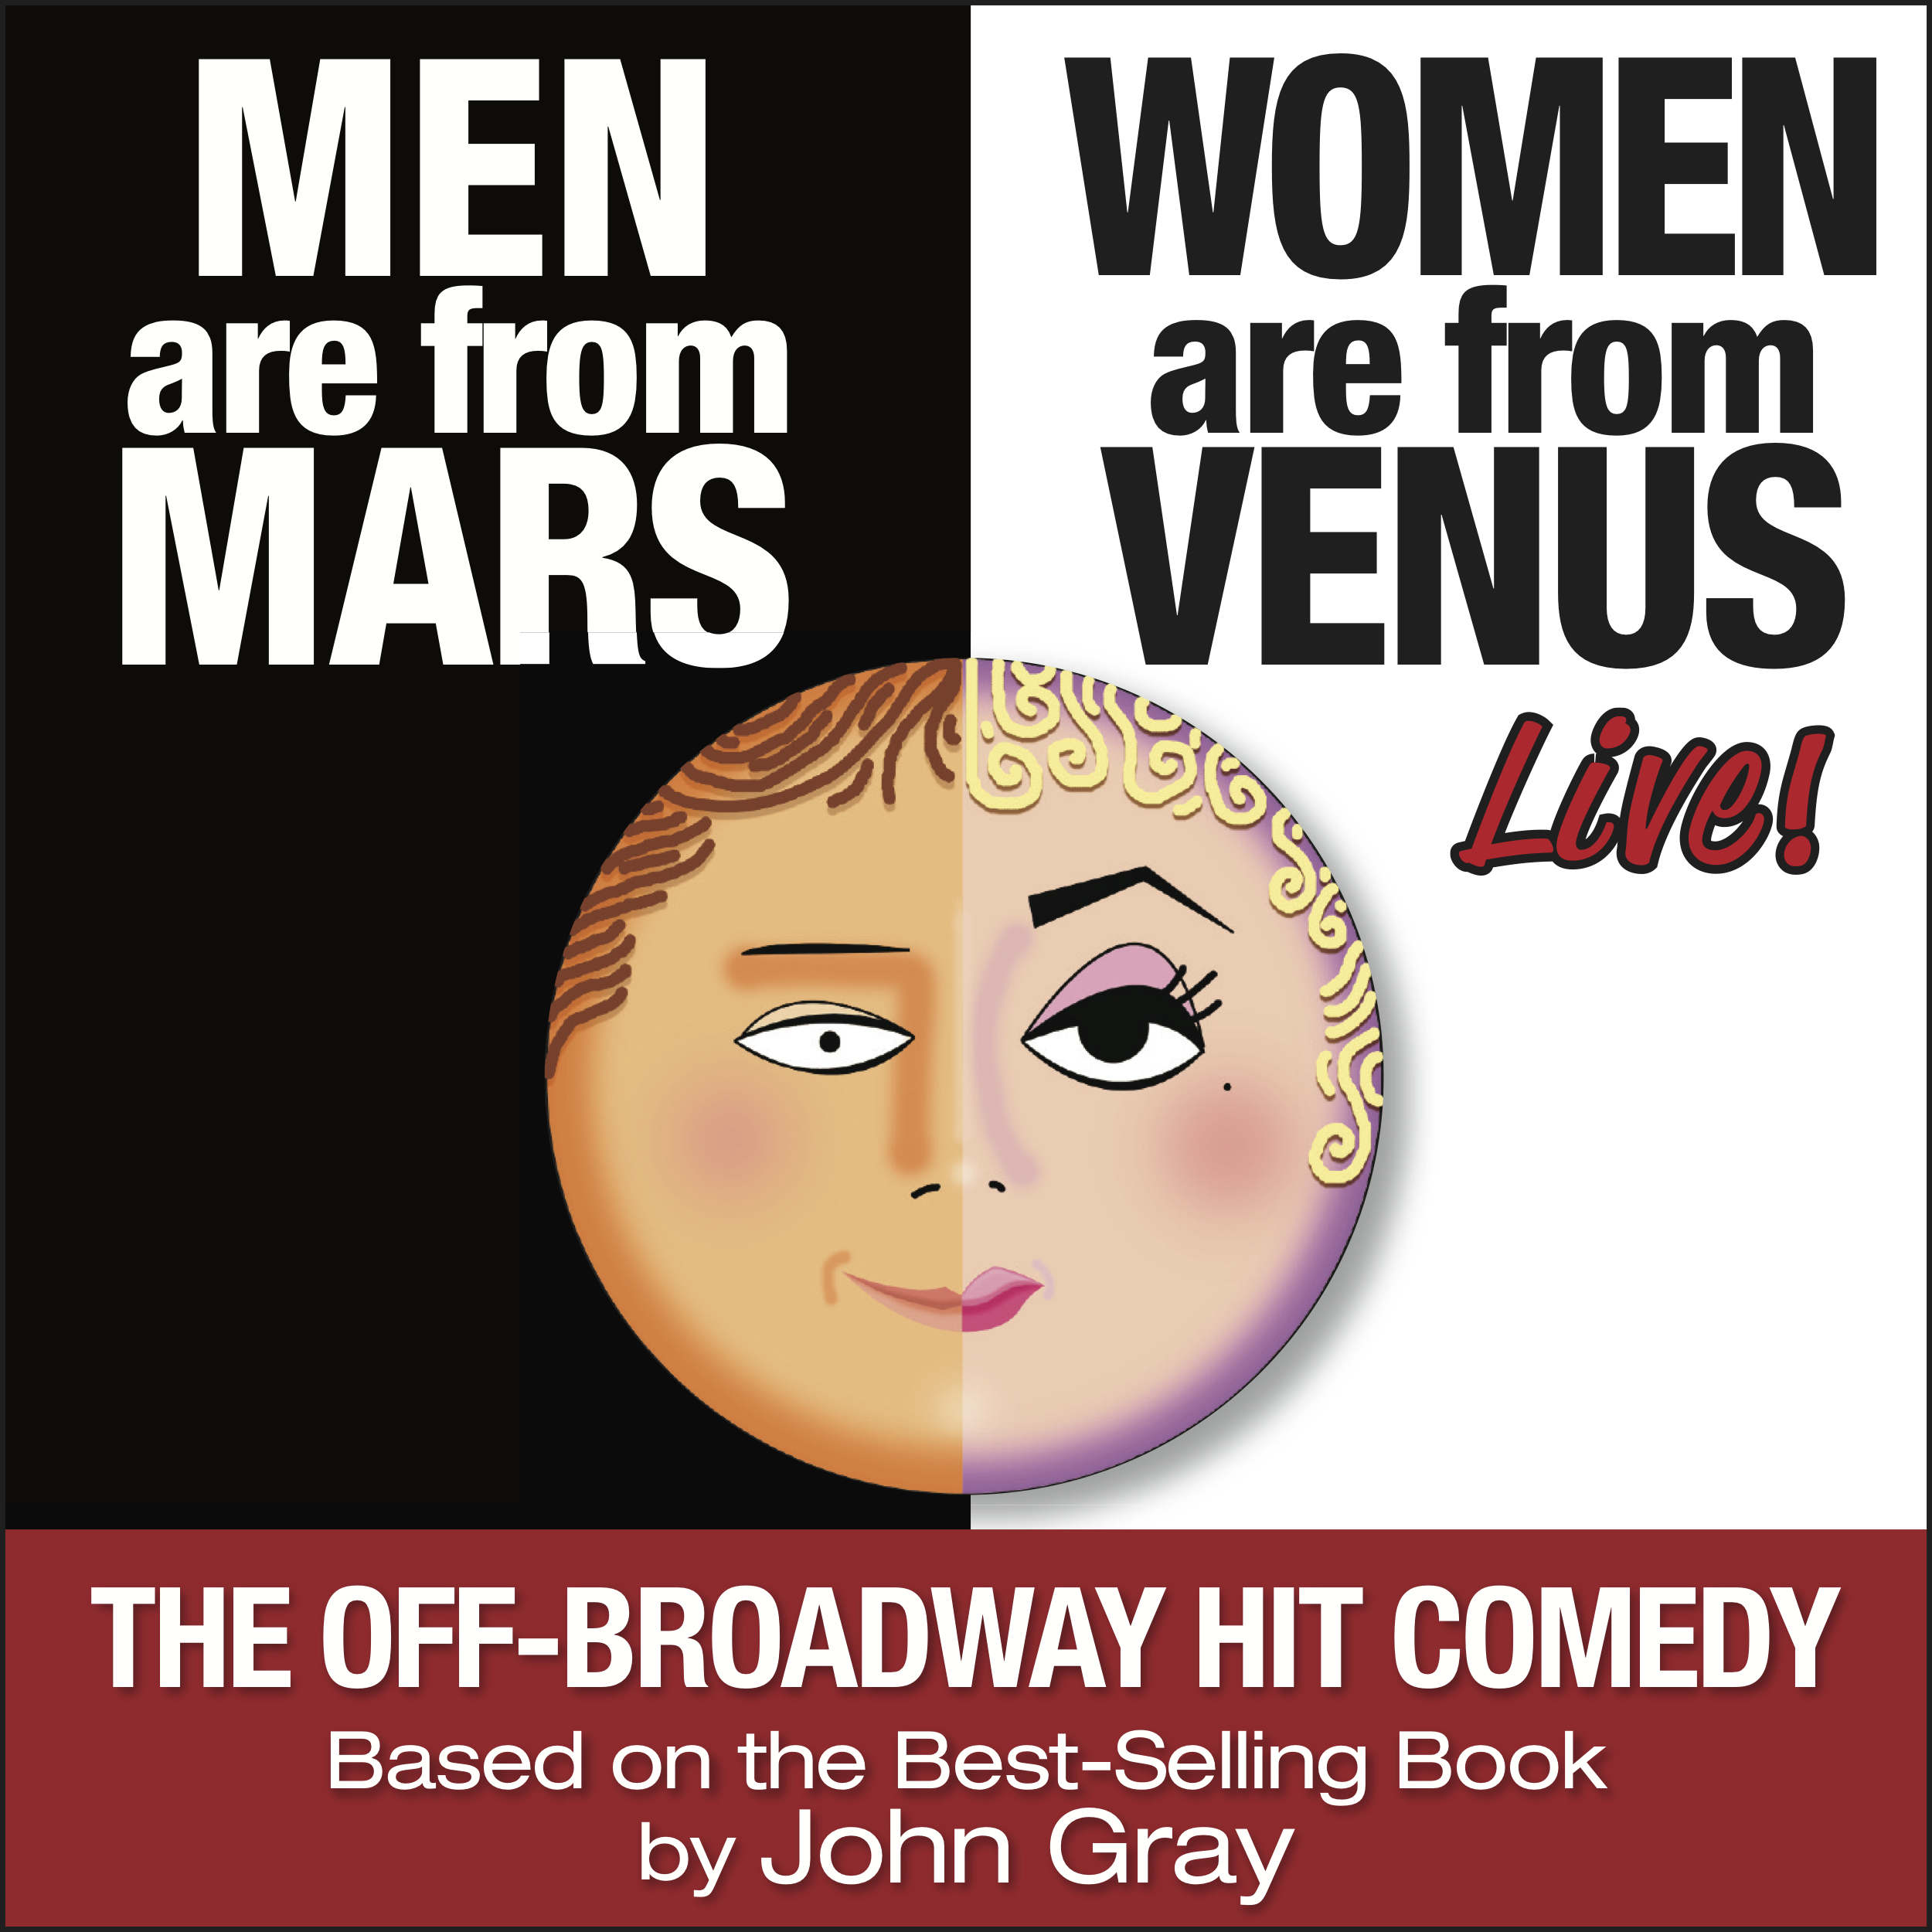 images from mars women are from venus men are from - photo #14